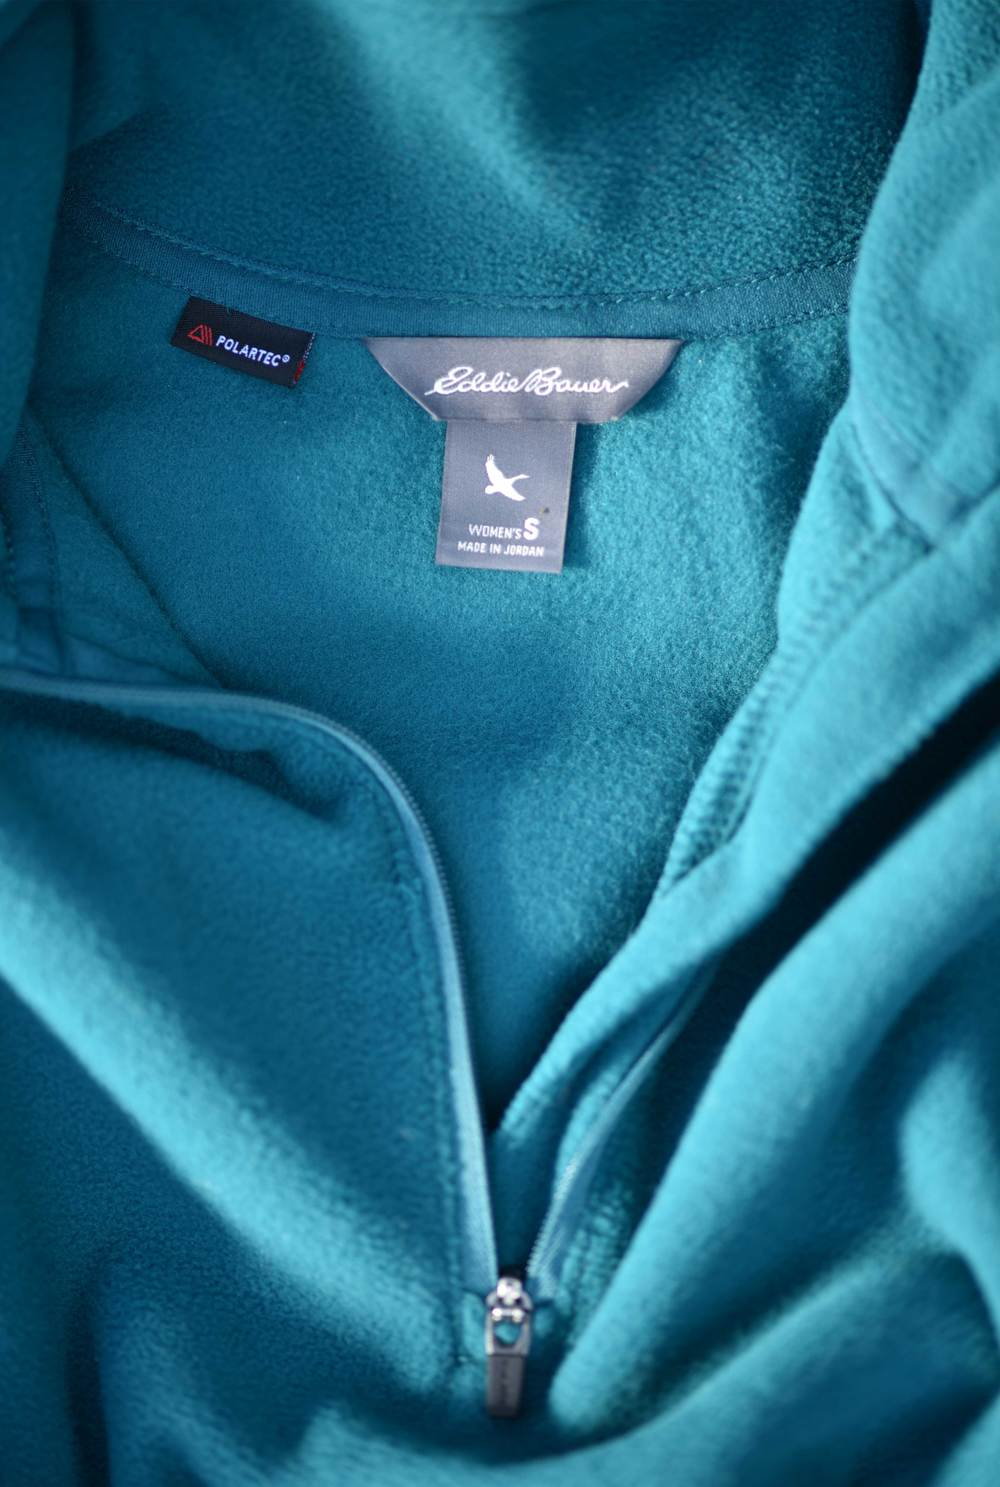 Details of my Eddie Bauer fleece jacket, image©gunjanvirk.